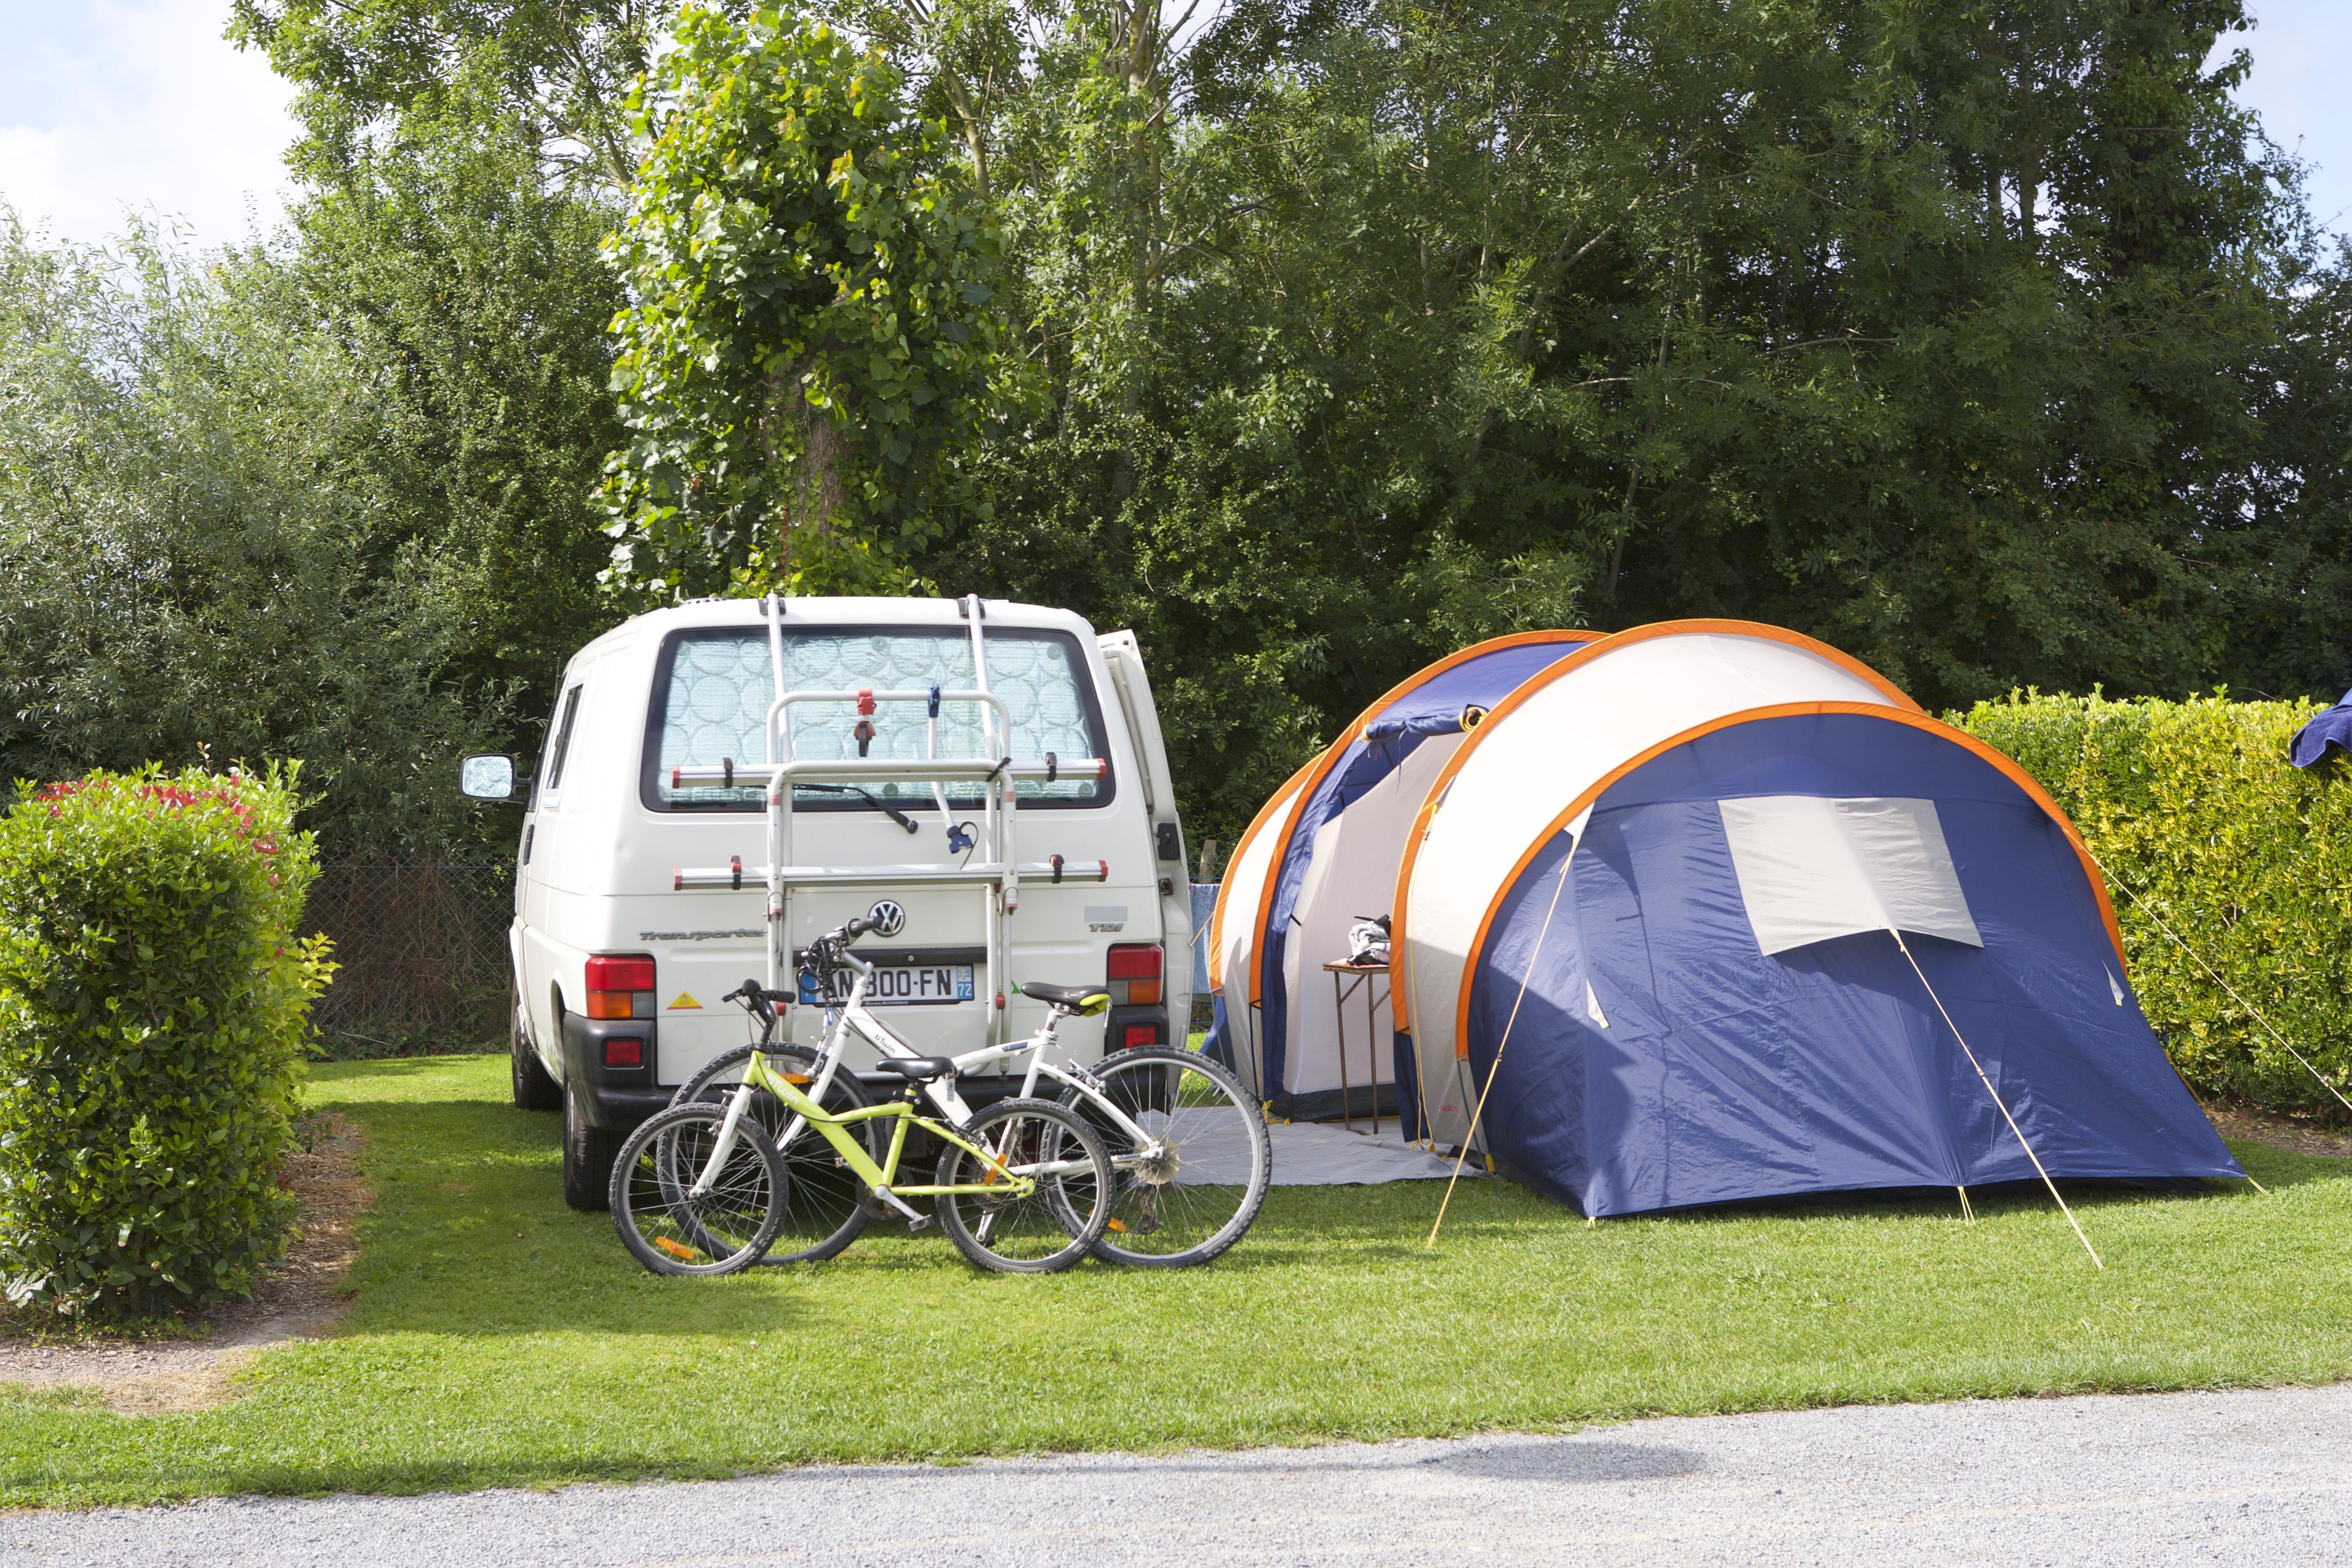 Emplacement - Emplacement + Véhicule - Camping Aux Pommiers